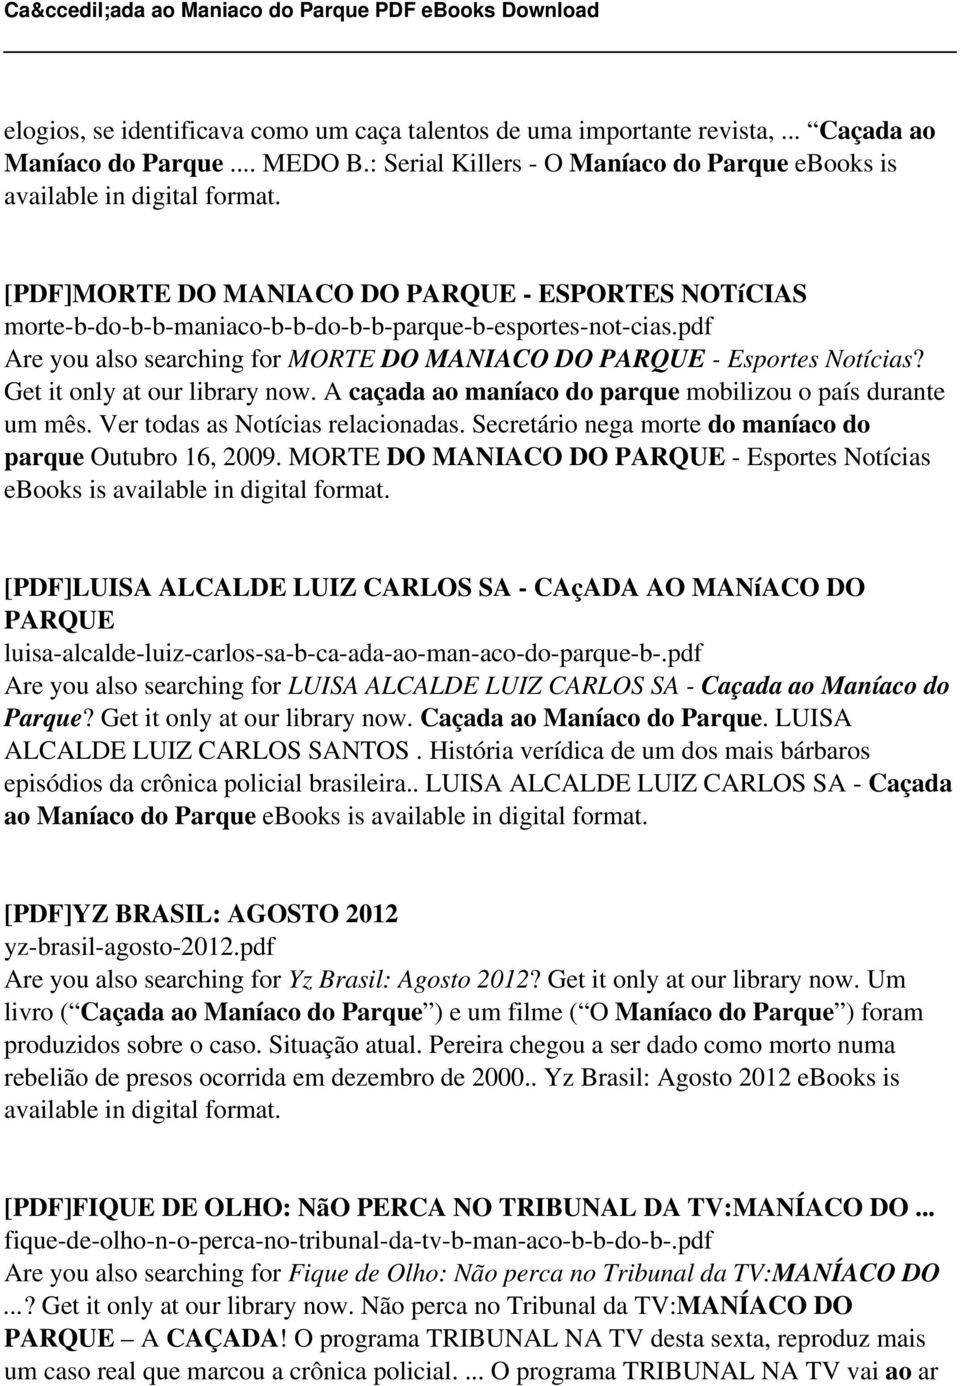 Caada ao maniaco do parque pdf pdf get it only at our library now a caada ao manaco do parque mobilizou o fandeluxe Images